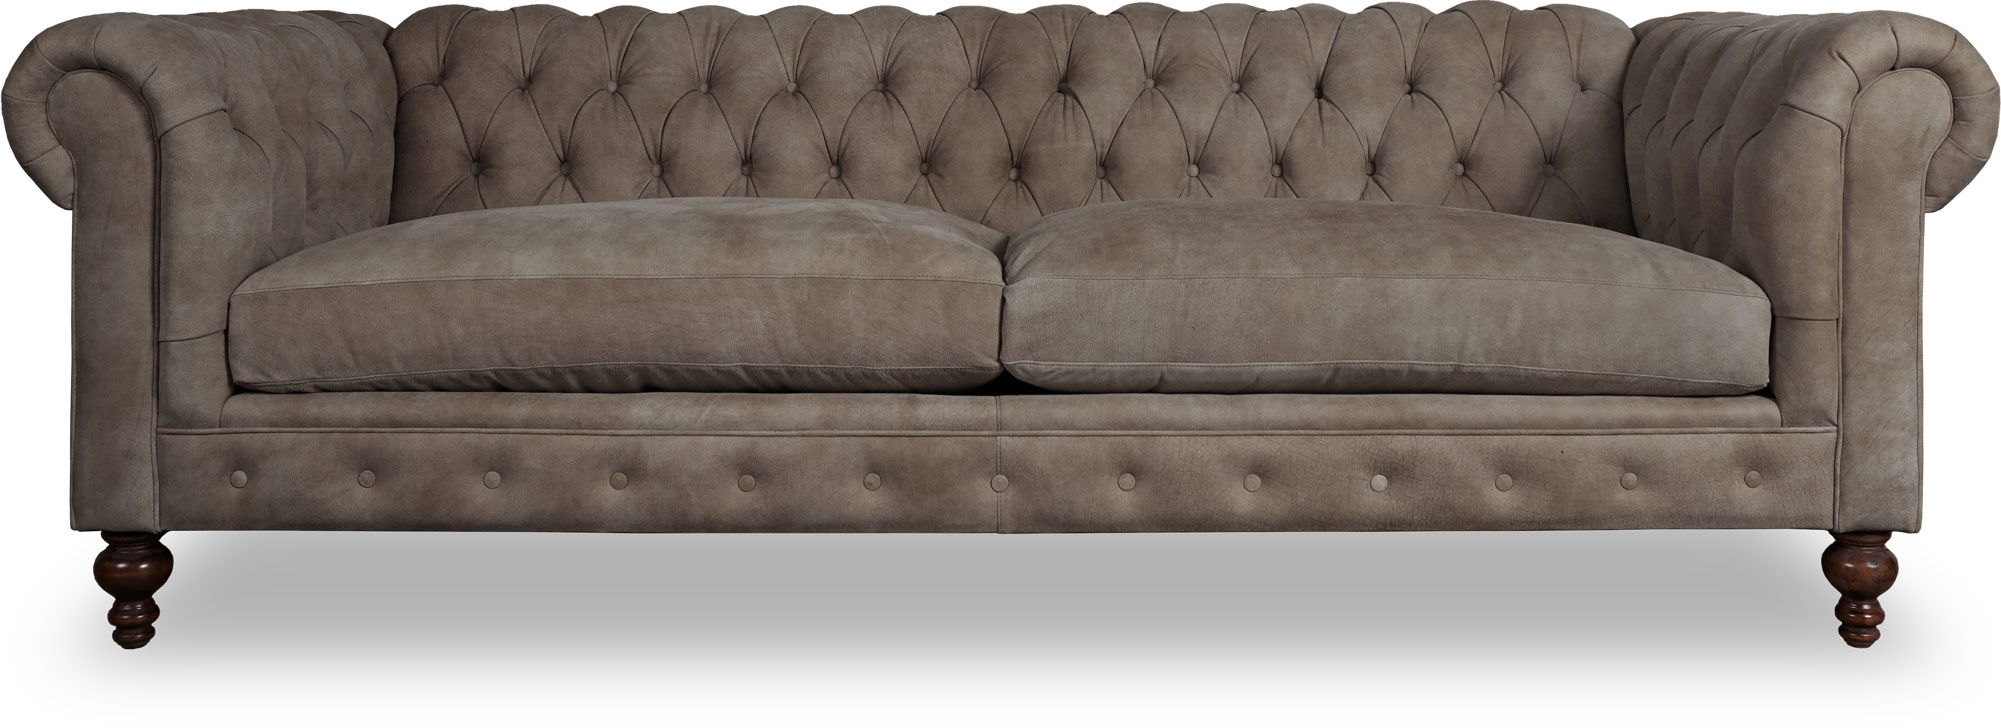 Sofa Bed Express Delivery Express Furniture Higgins Leather Chesterfield Sofa Roger Chris